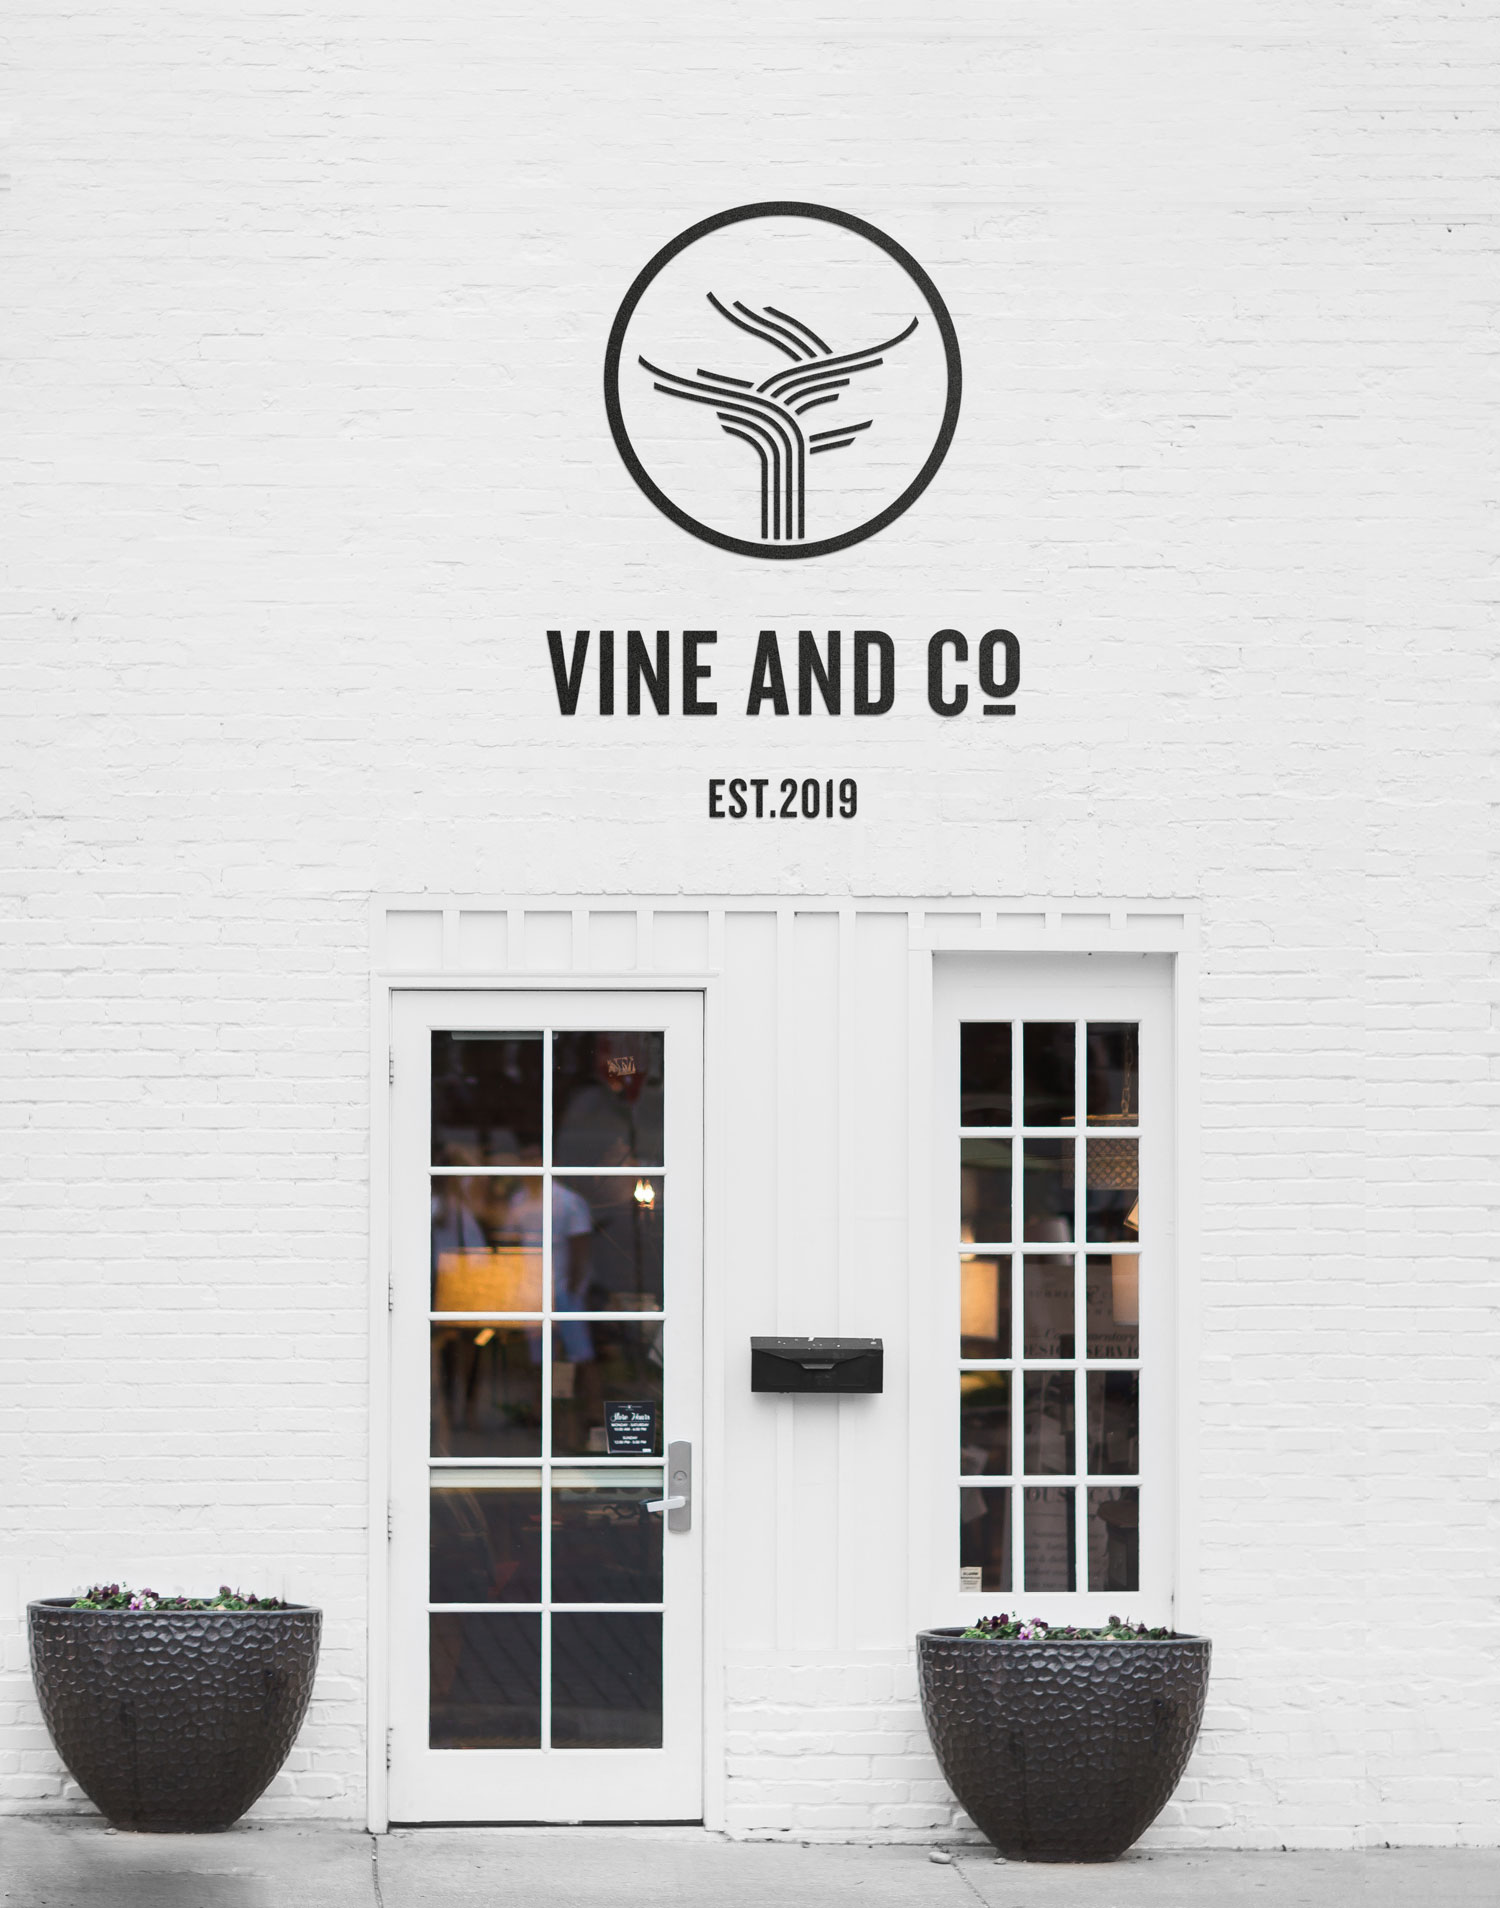 vine and co signage